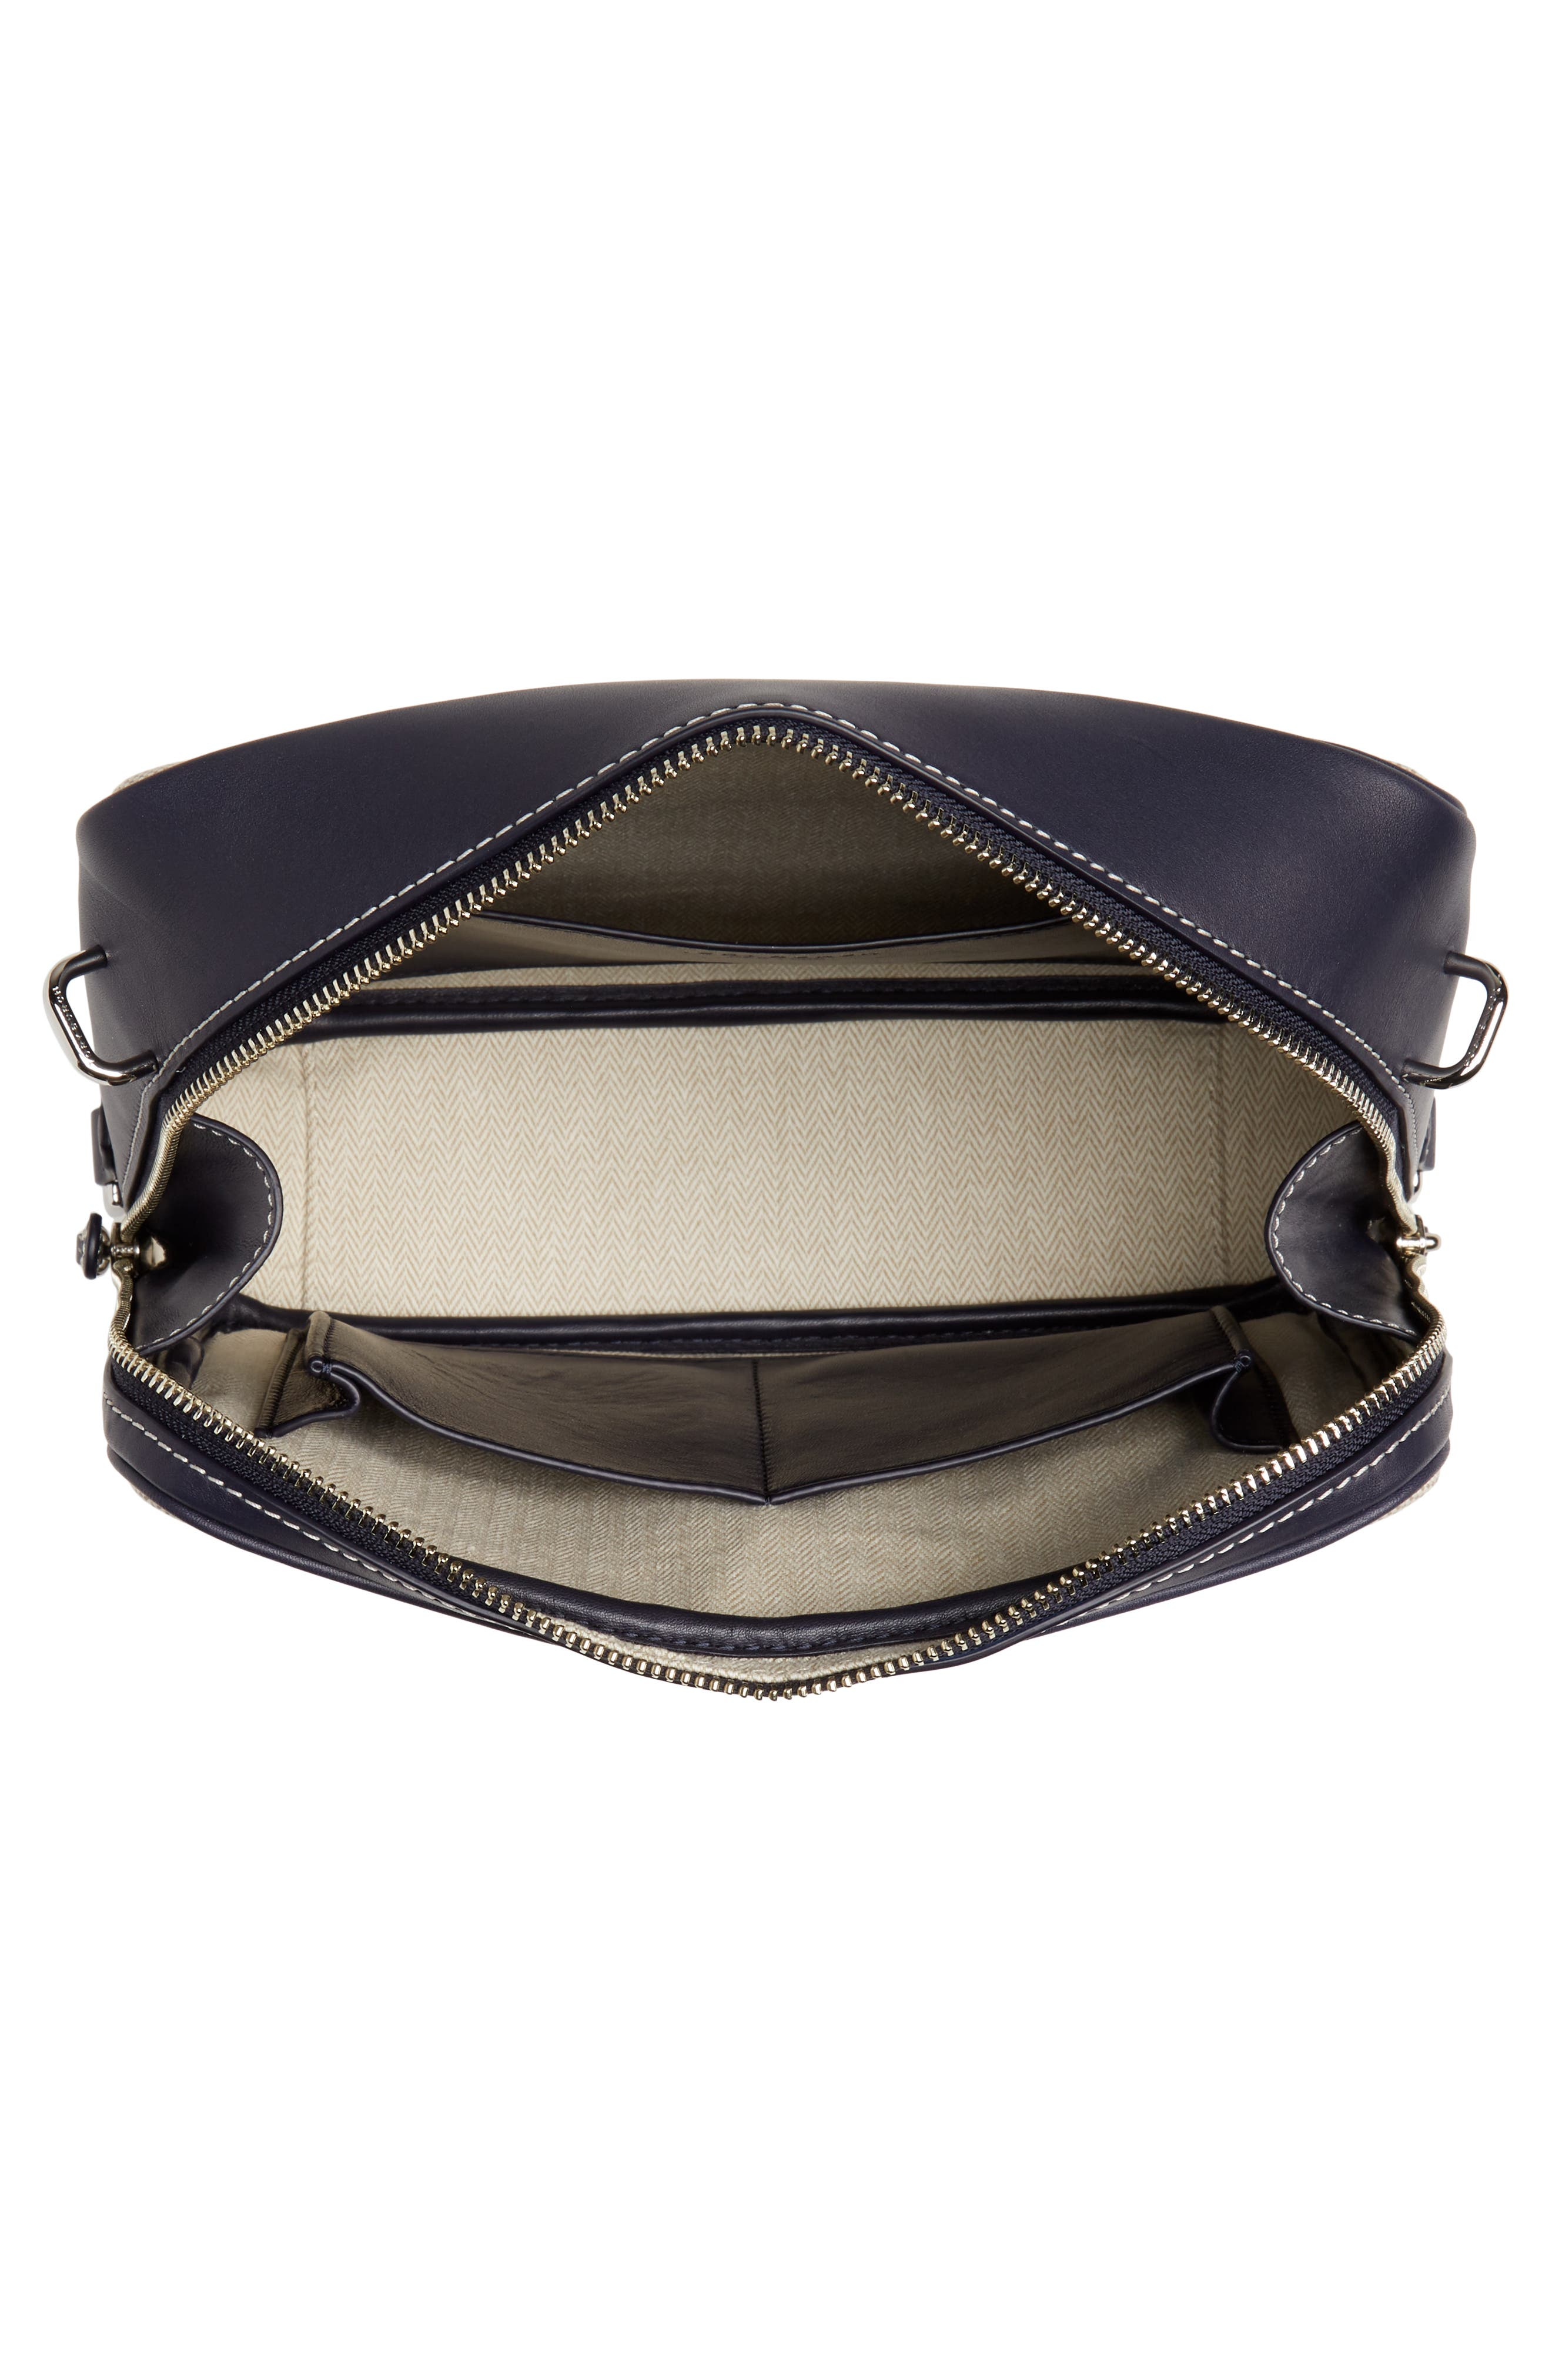 TORY BURCH, Leather & Canvas Camera Bag, Alternate thumbnail 5, color, MIDNIGHT